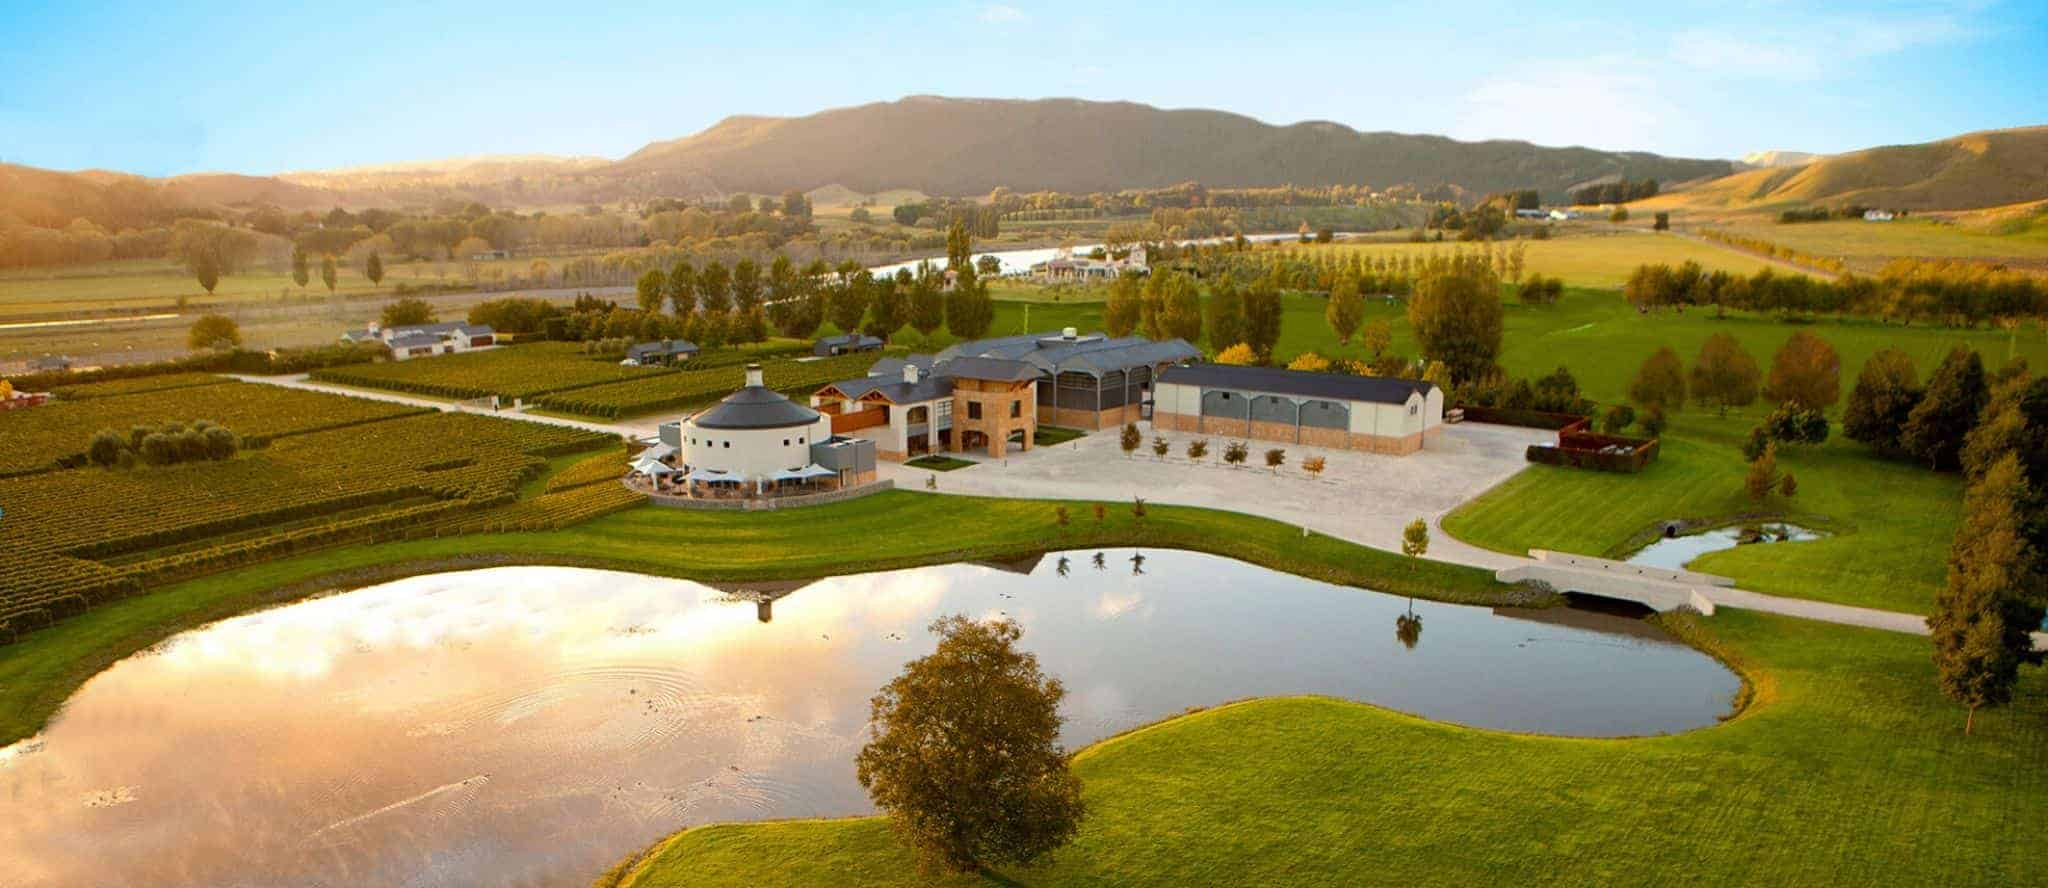 What wine can you find in Hawke's Bay?